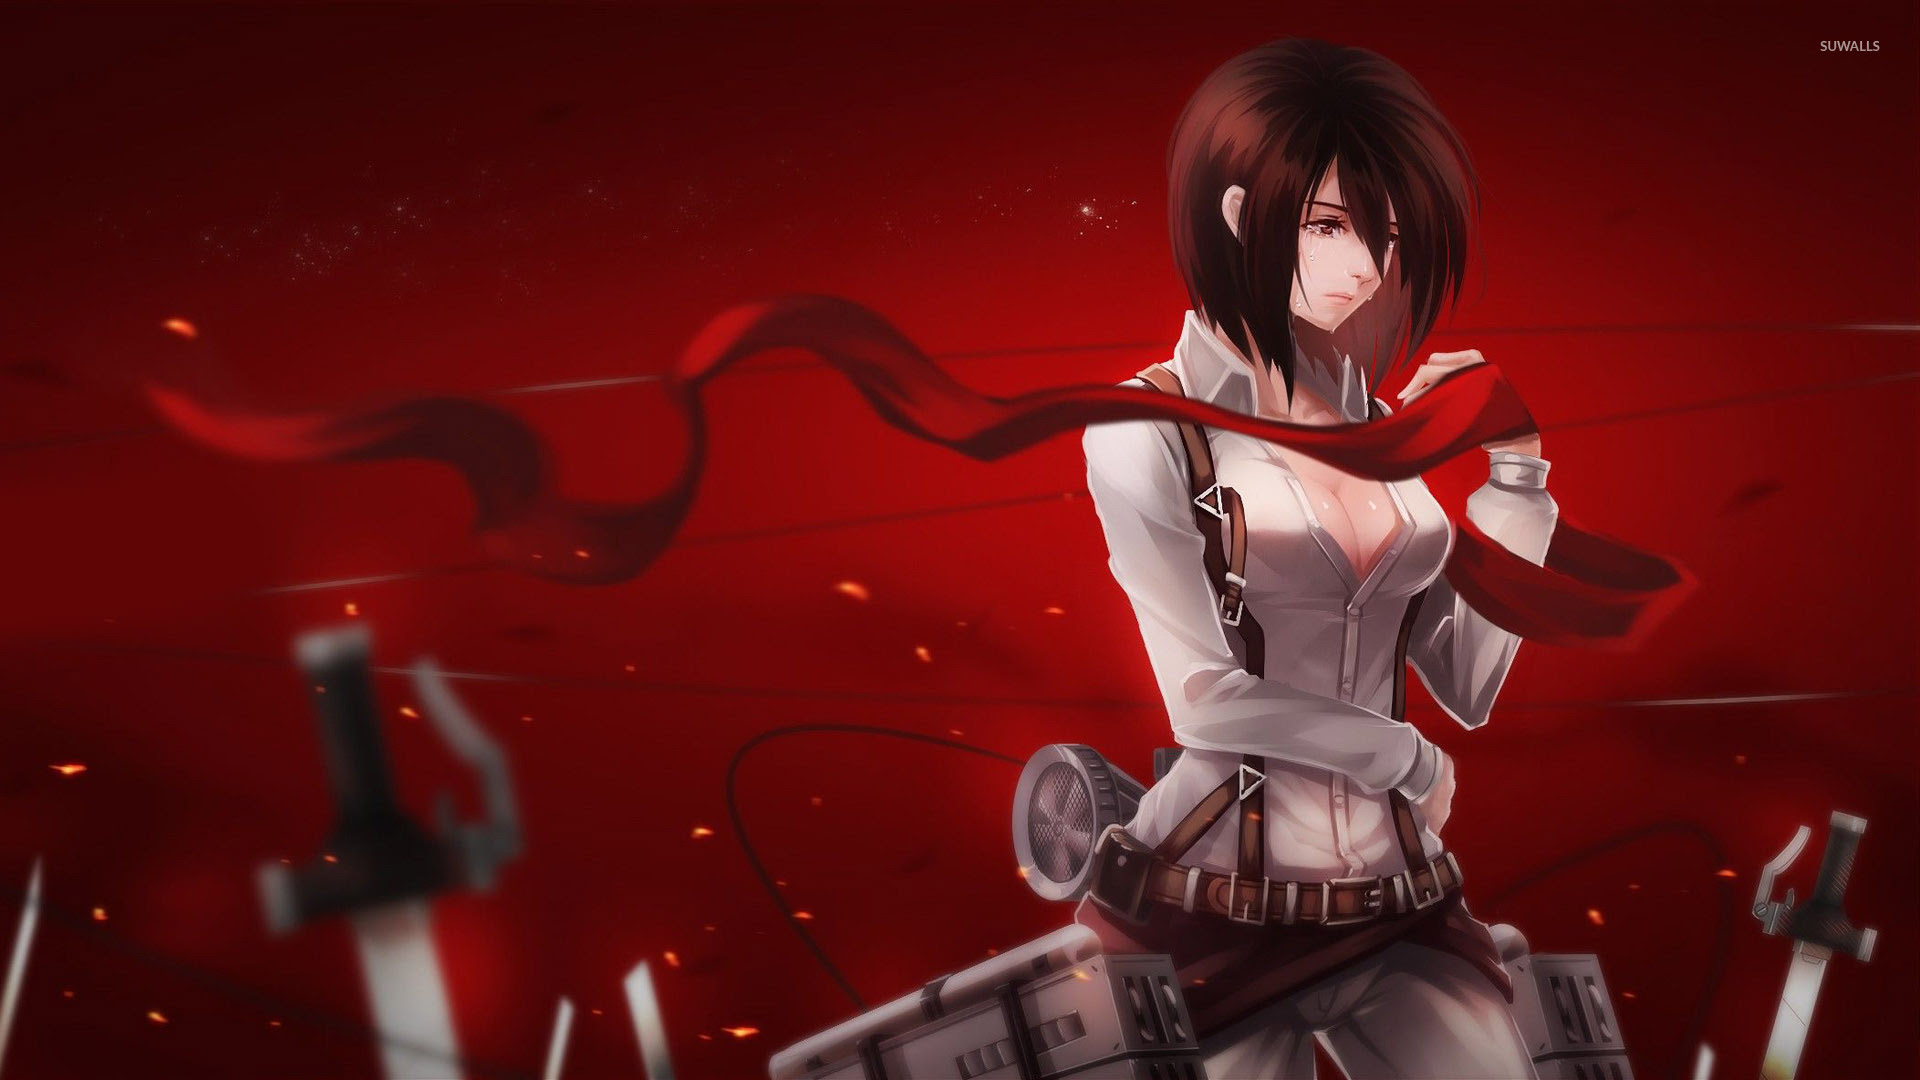 Anime Attack On Titan Mikasa Wallpaper Anime Wallpapers